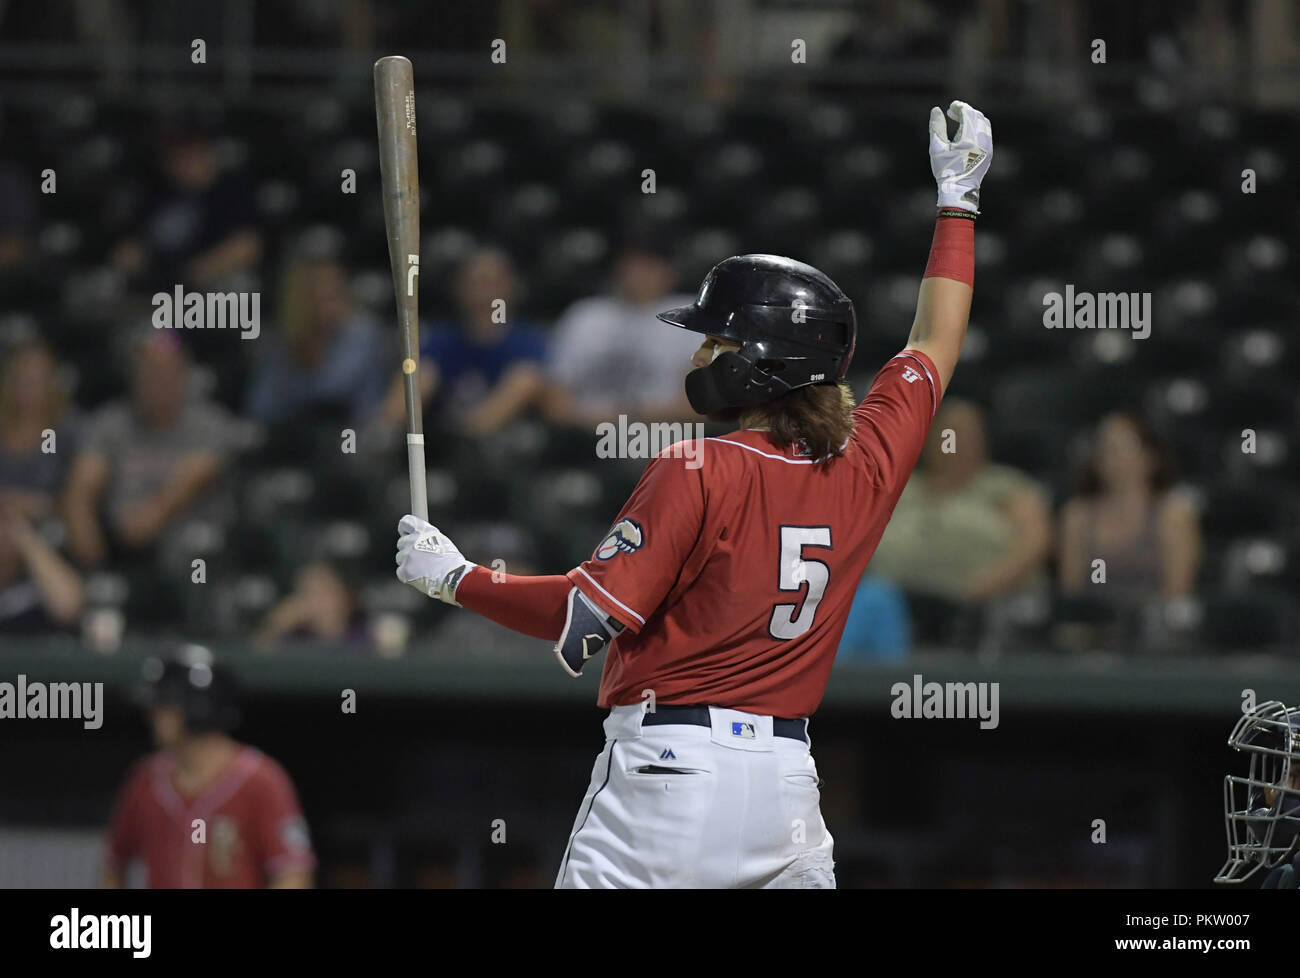 Shortstop Bo Bichette hits for the New Hampshire Fisher Cats during a minor league playoff game in Manchester, N.H., USA. - Stock Image